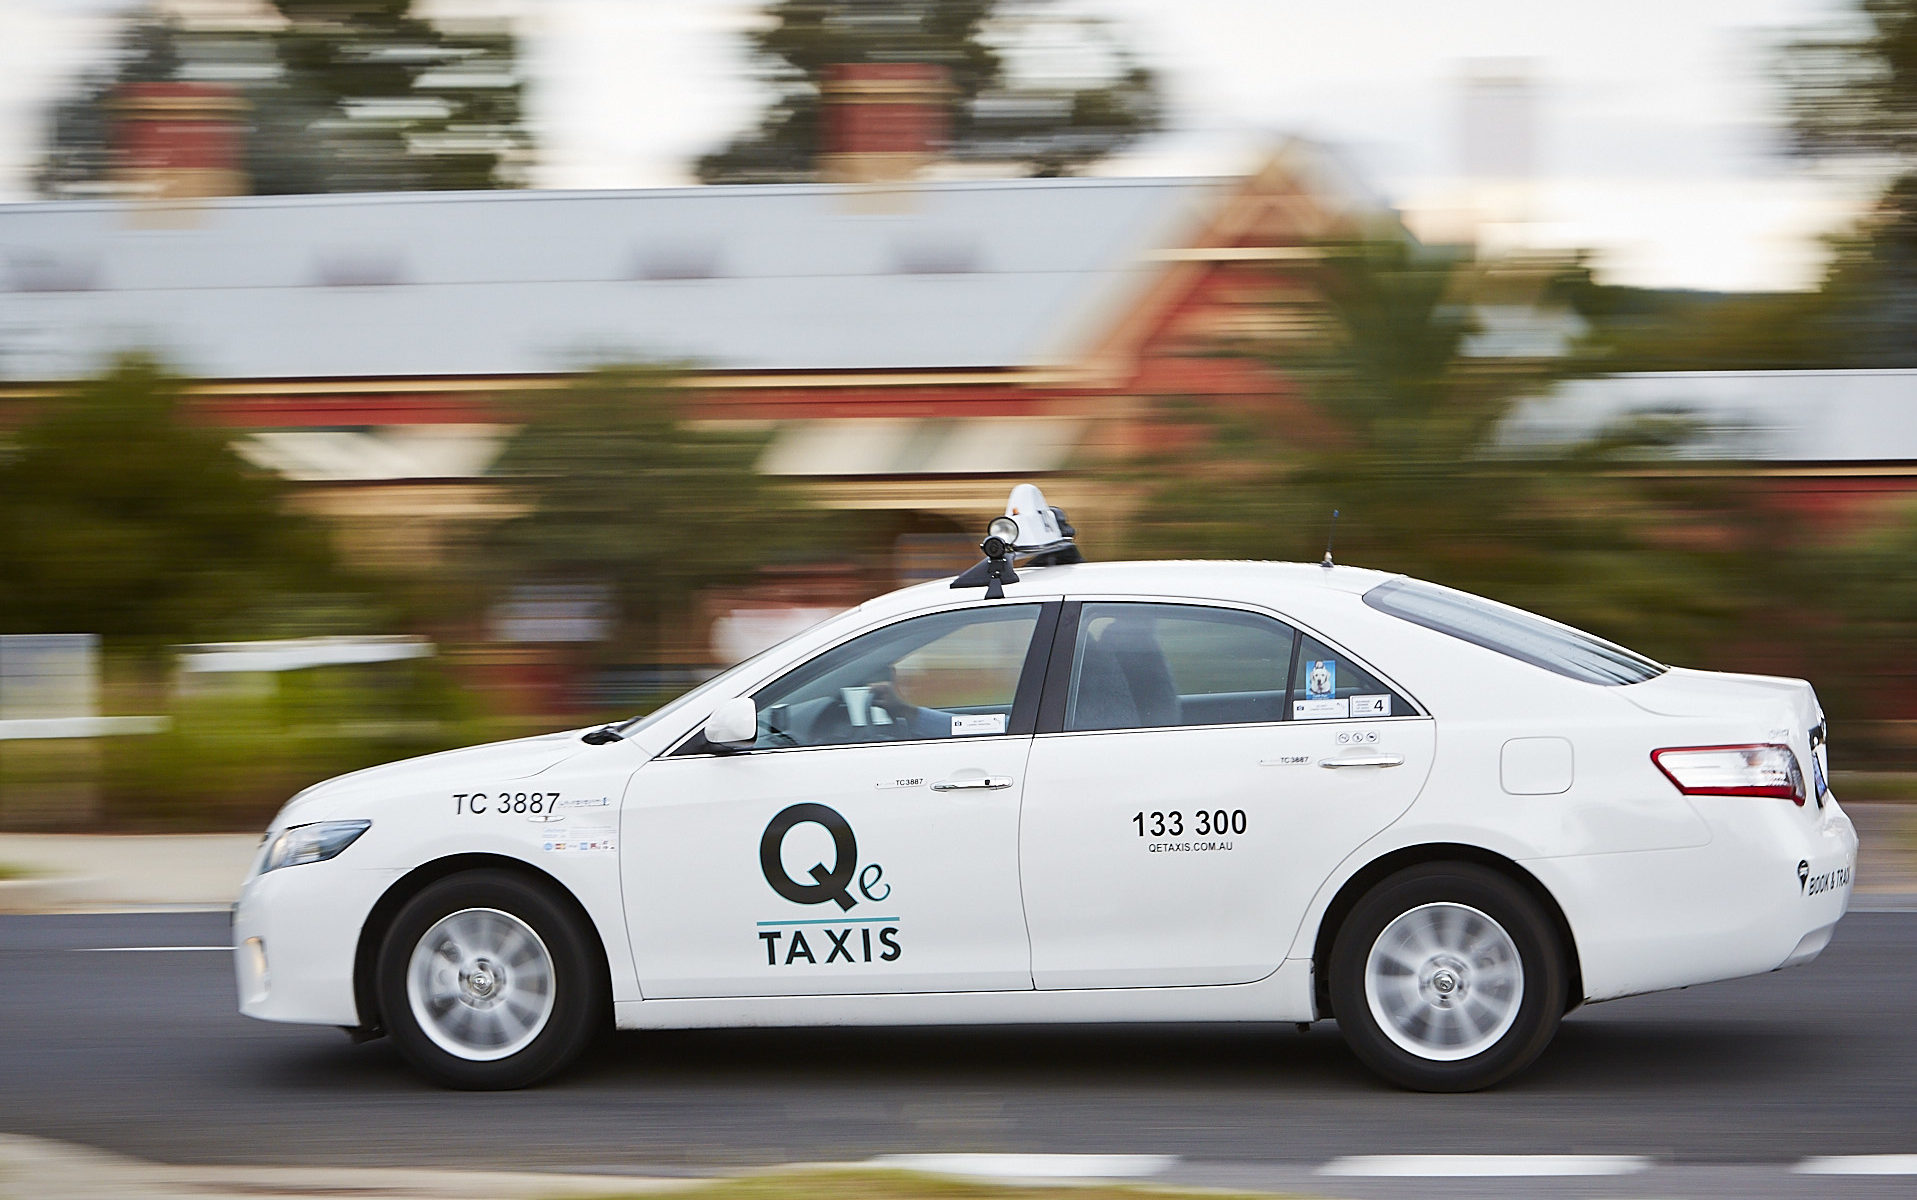 Q e Taxis driving past Queanbeyan Railway Station